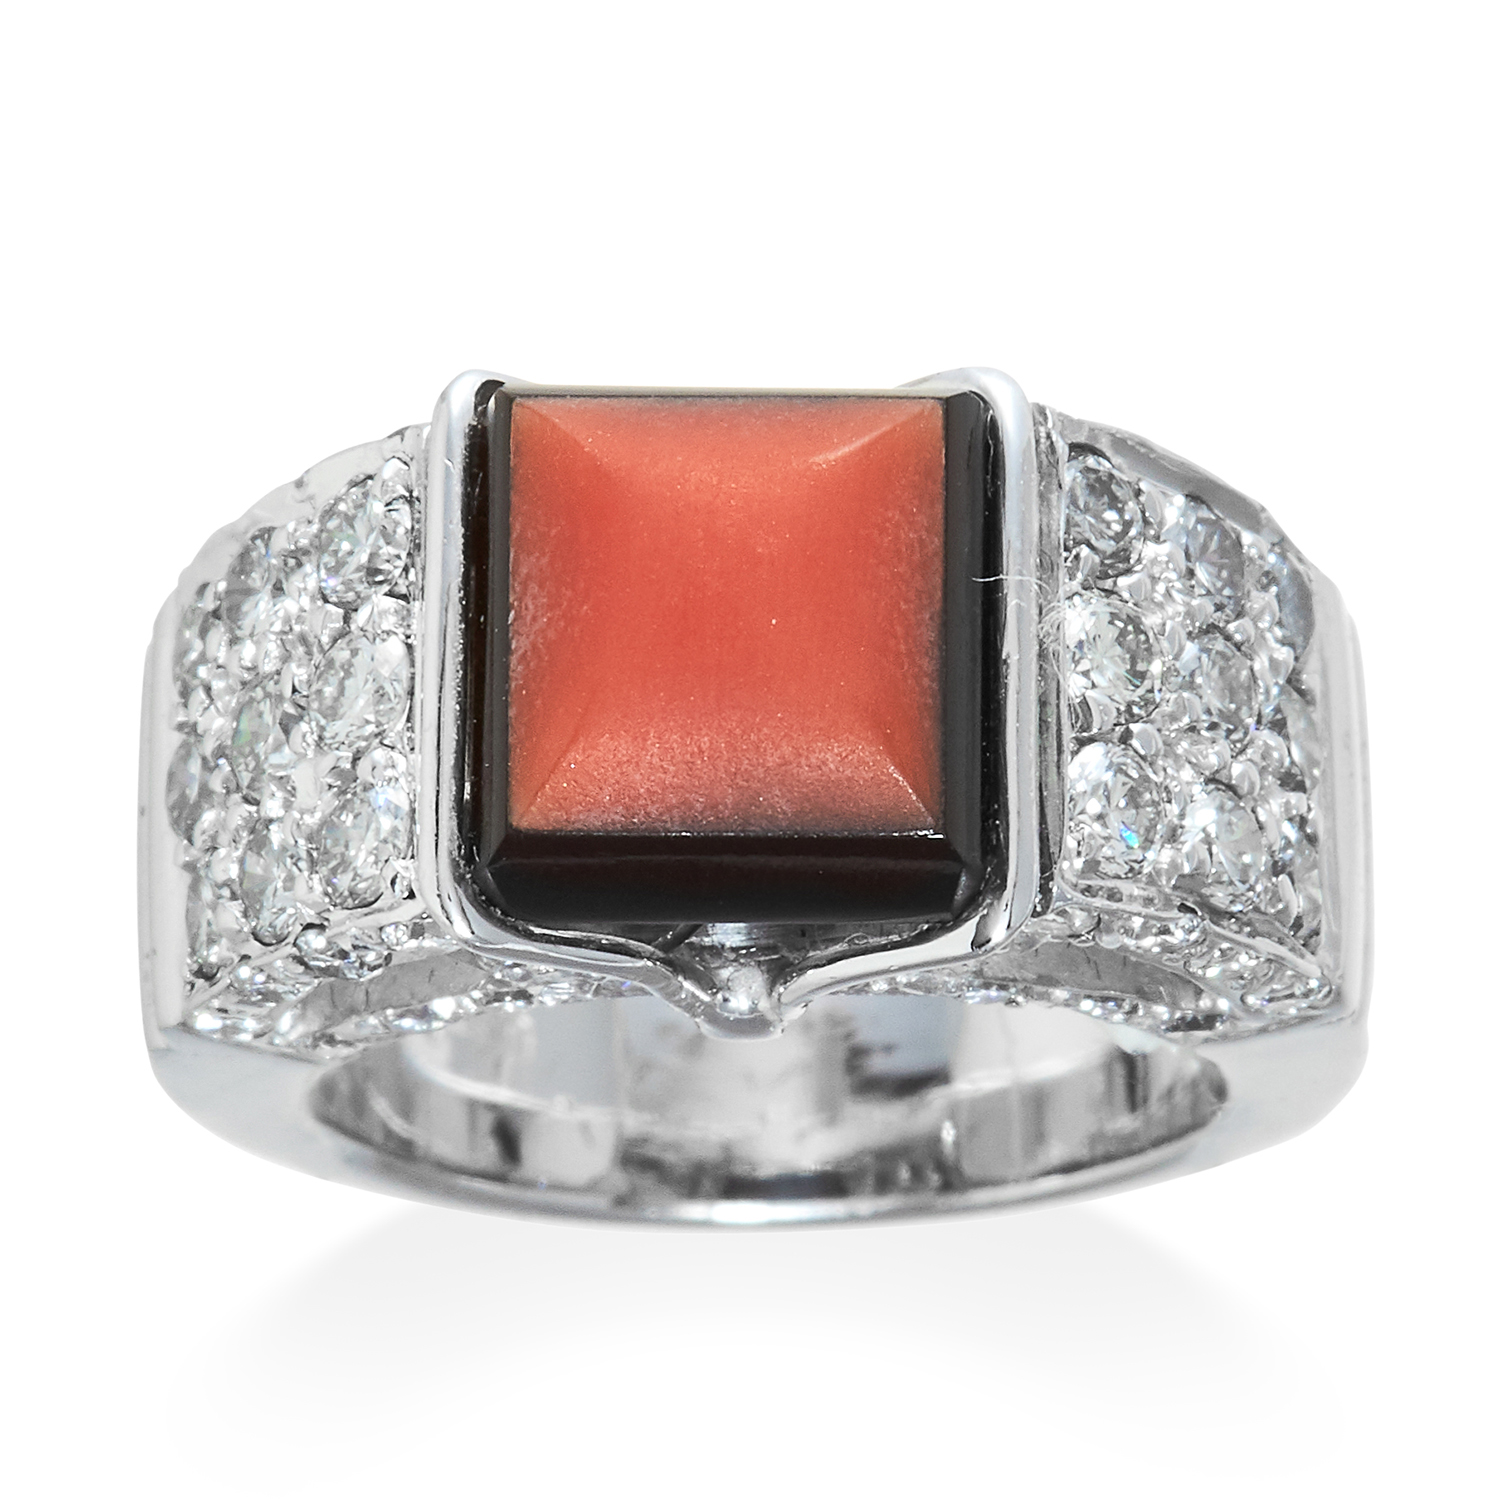 AN ANTIQUE CORAL, ONYX AND DIAMOND RING in 18ct white gold, stamped 750, size J / 5, 12.5g.